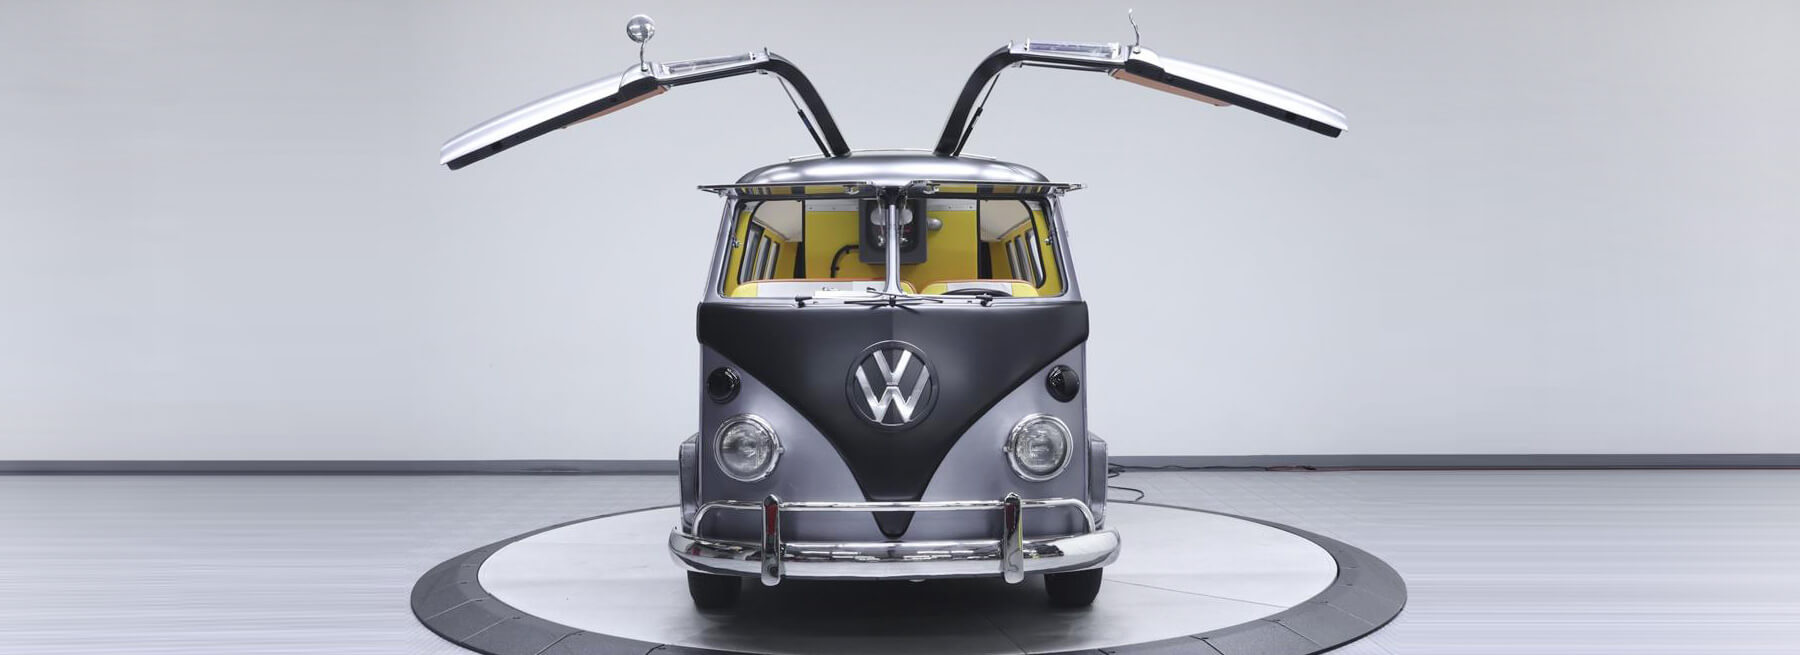 1967 volkswagen bus back to the future time machine 1 (1)